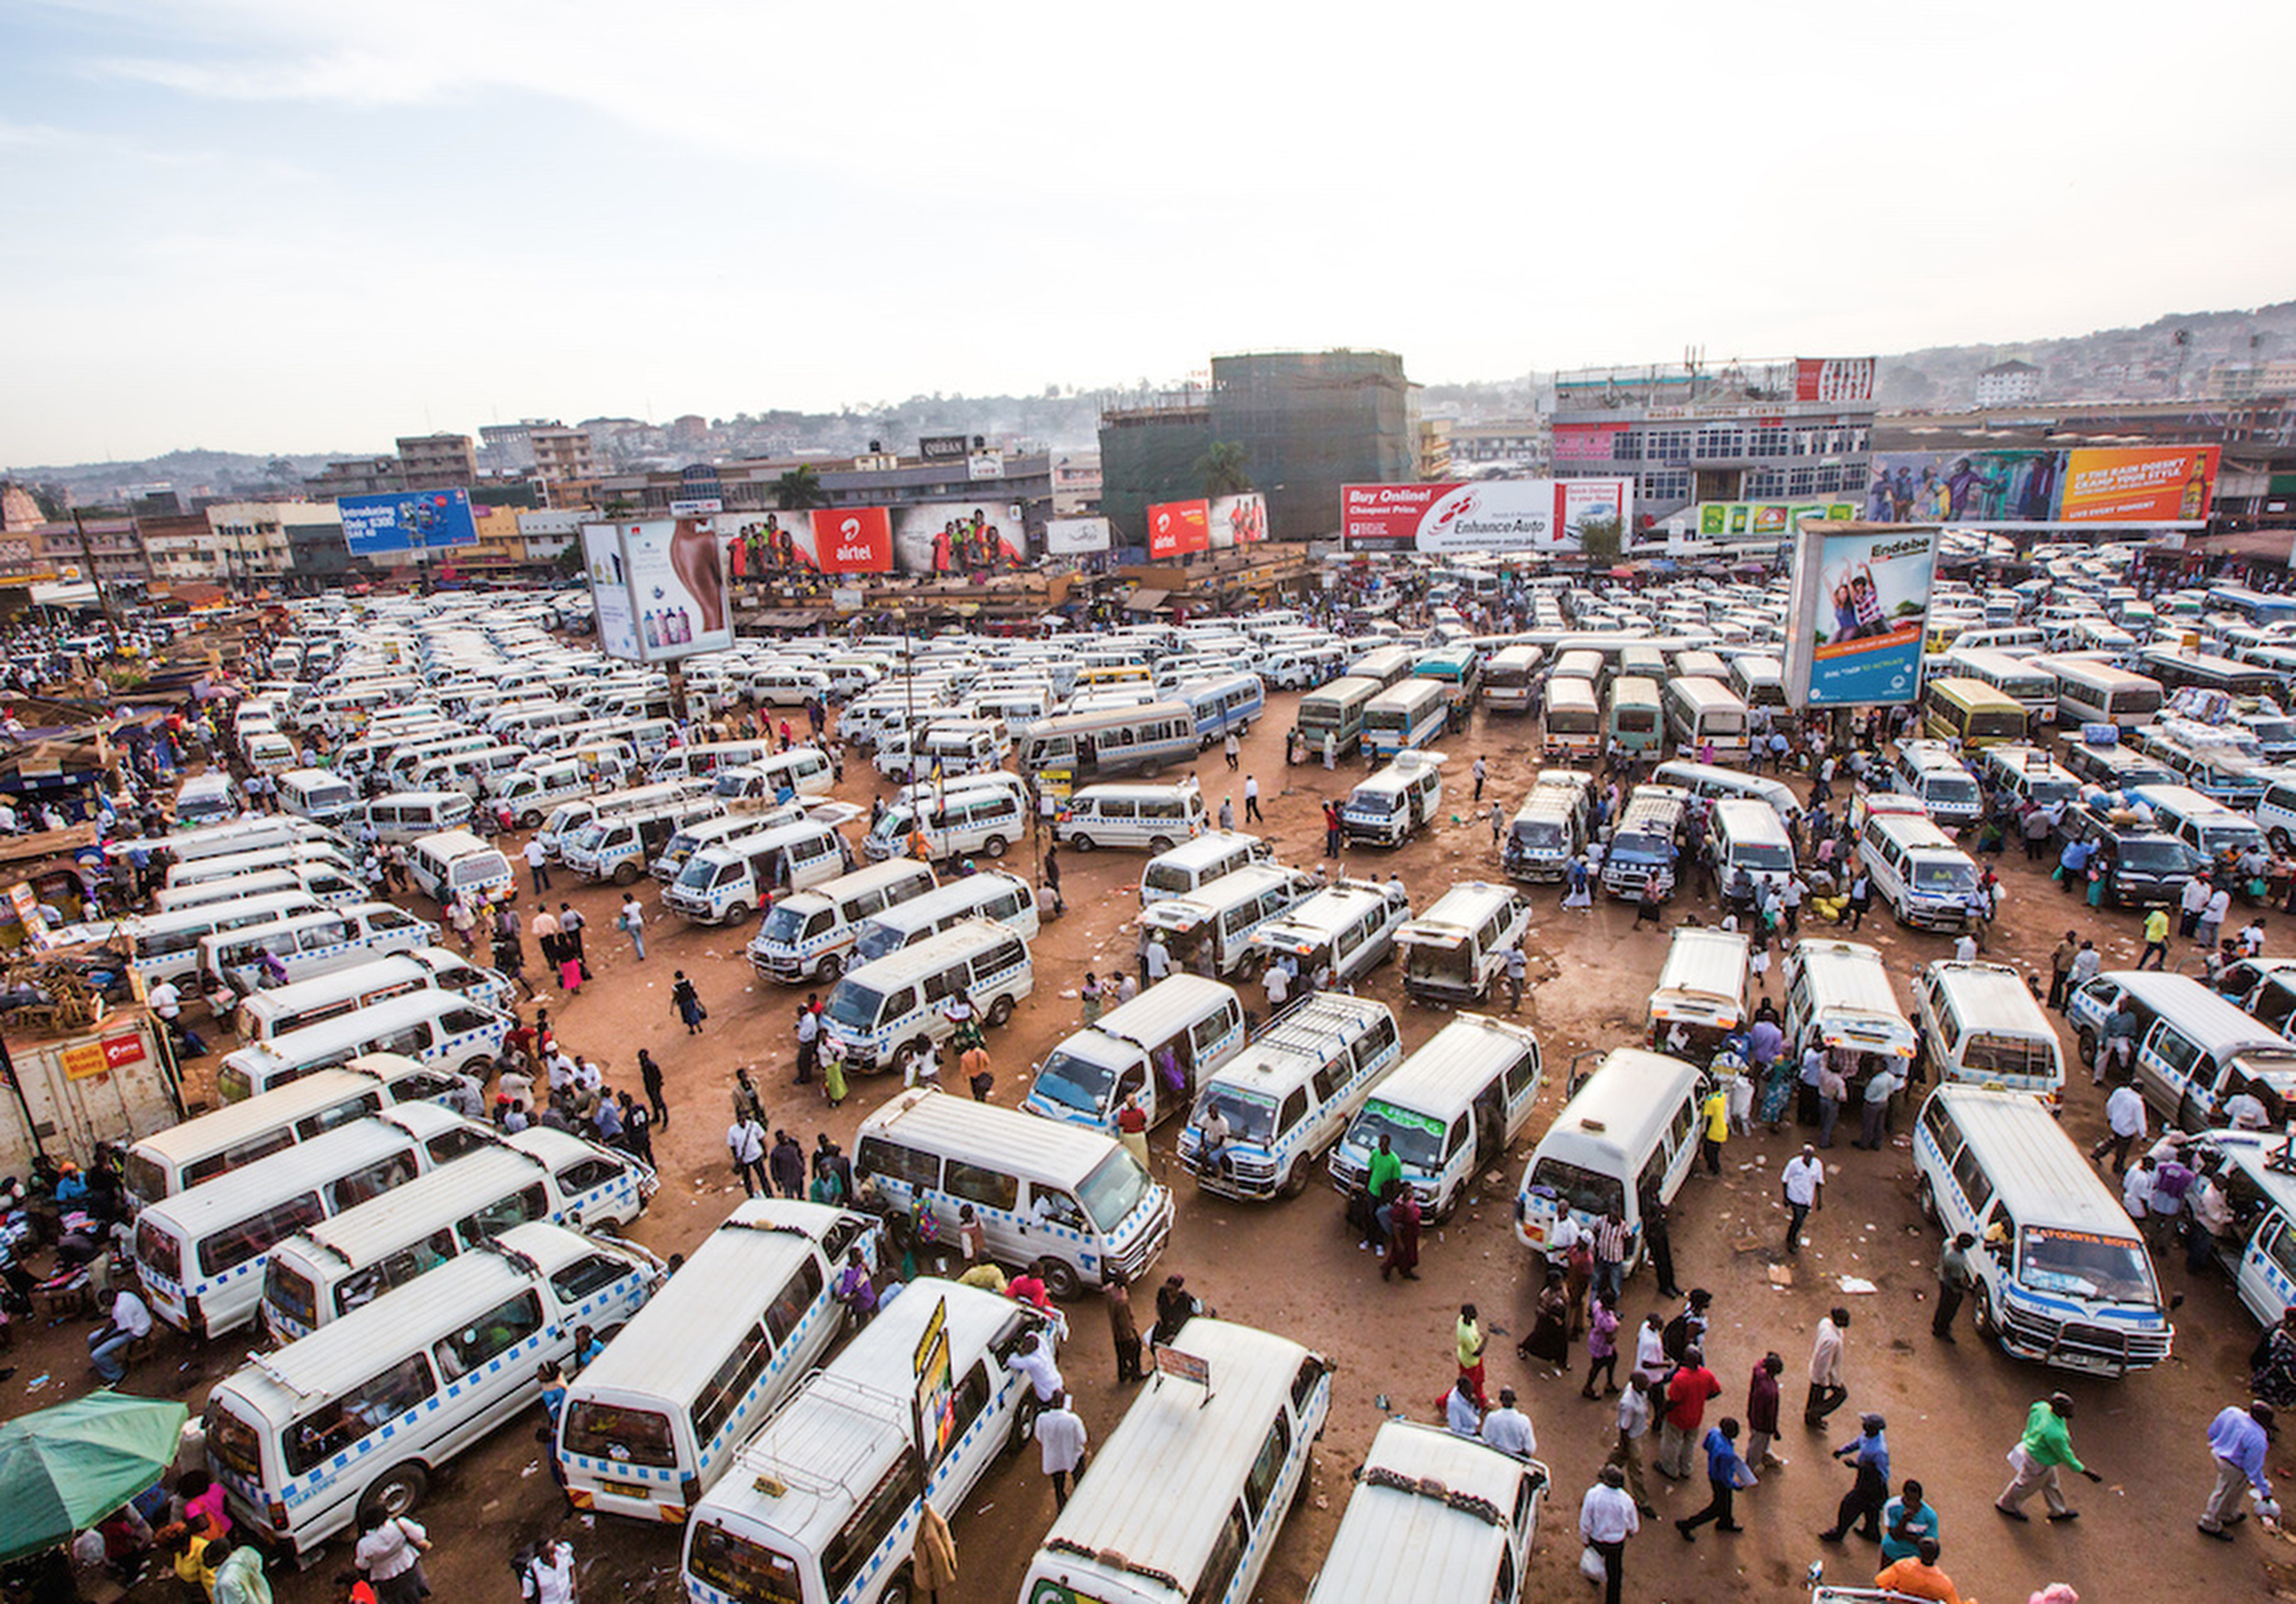 A commercial bus station in Kampala, Uganda. (Tom Saater)